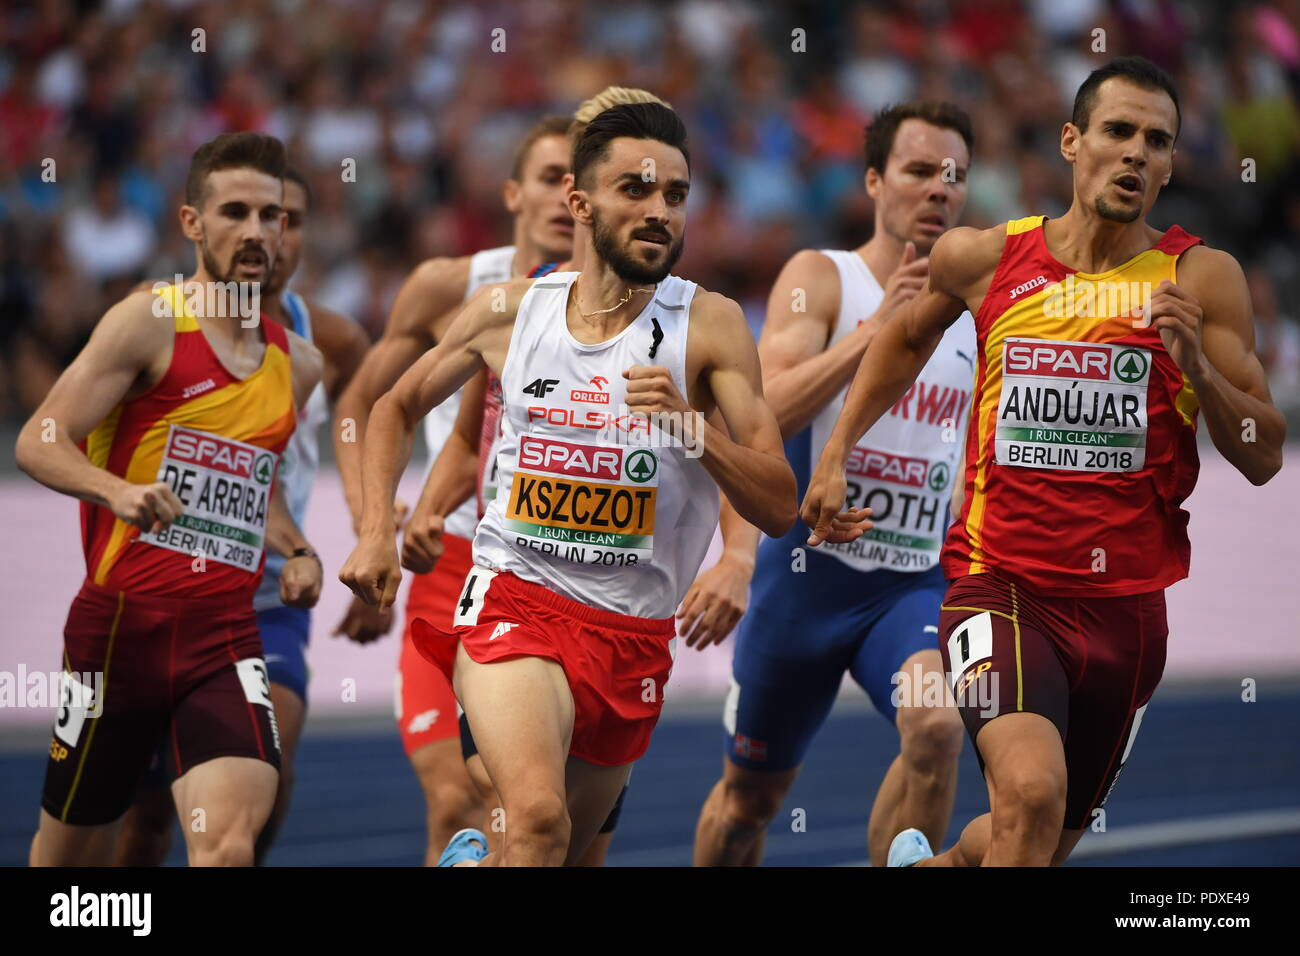 Berlin, Germany. 10th Aug, 2018. Athletics, European Championships in the Olympic Stadium, 800 m, Men, Semi-final: Adam Kszczot (c) from Poland, Daniel Andujar (r) from Spain in action. Credit: Hendrik Schmidt/dpa-Zentralbild/dpa/Alamy Live News - Stock Image